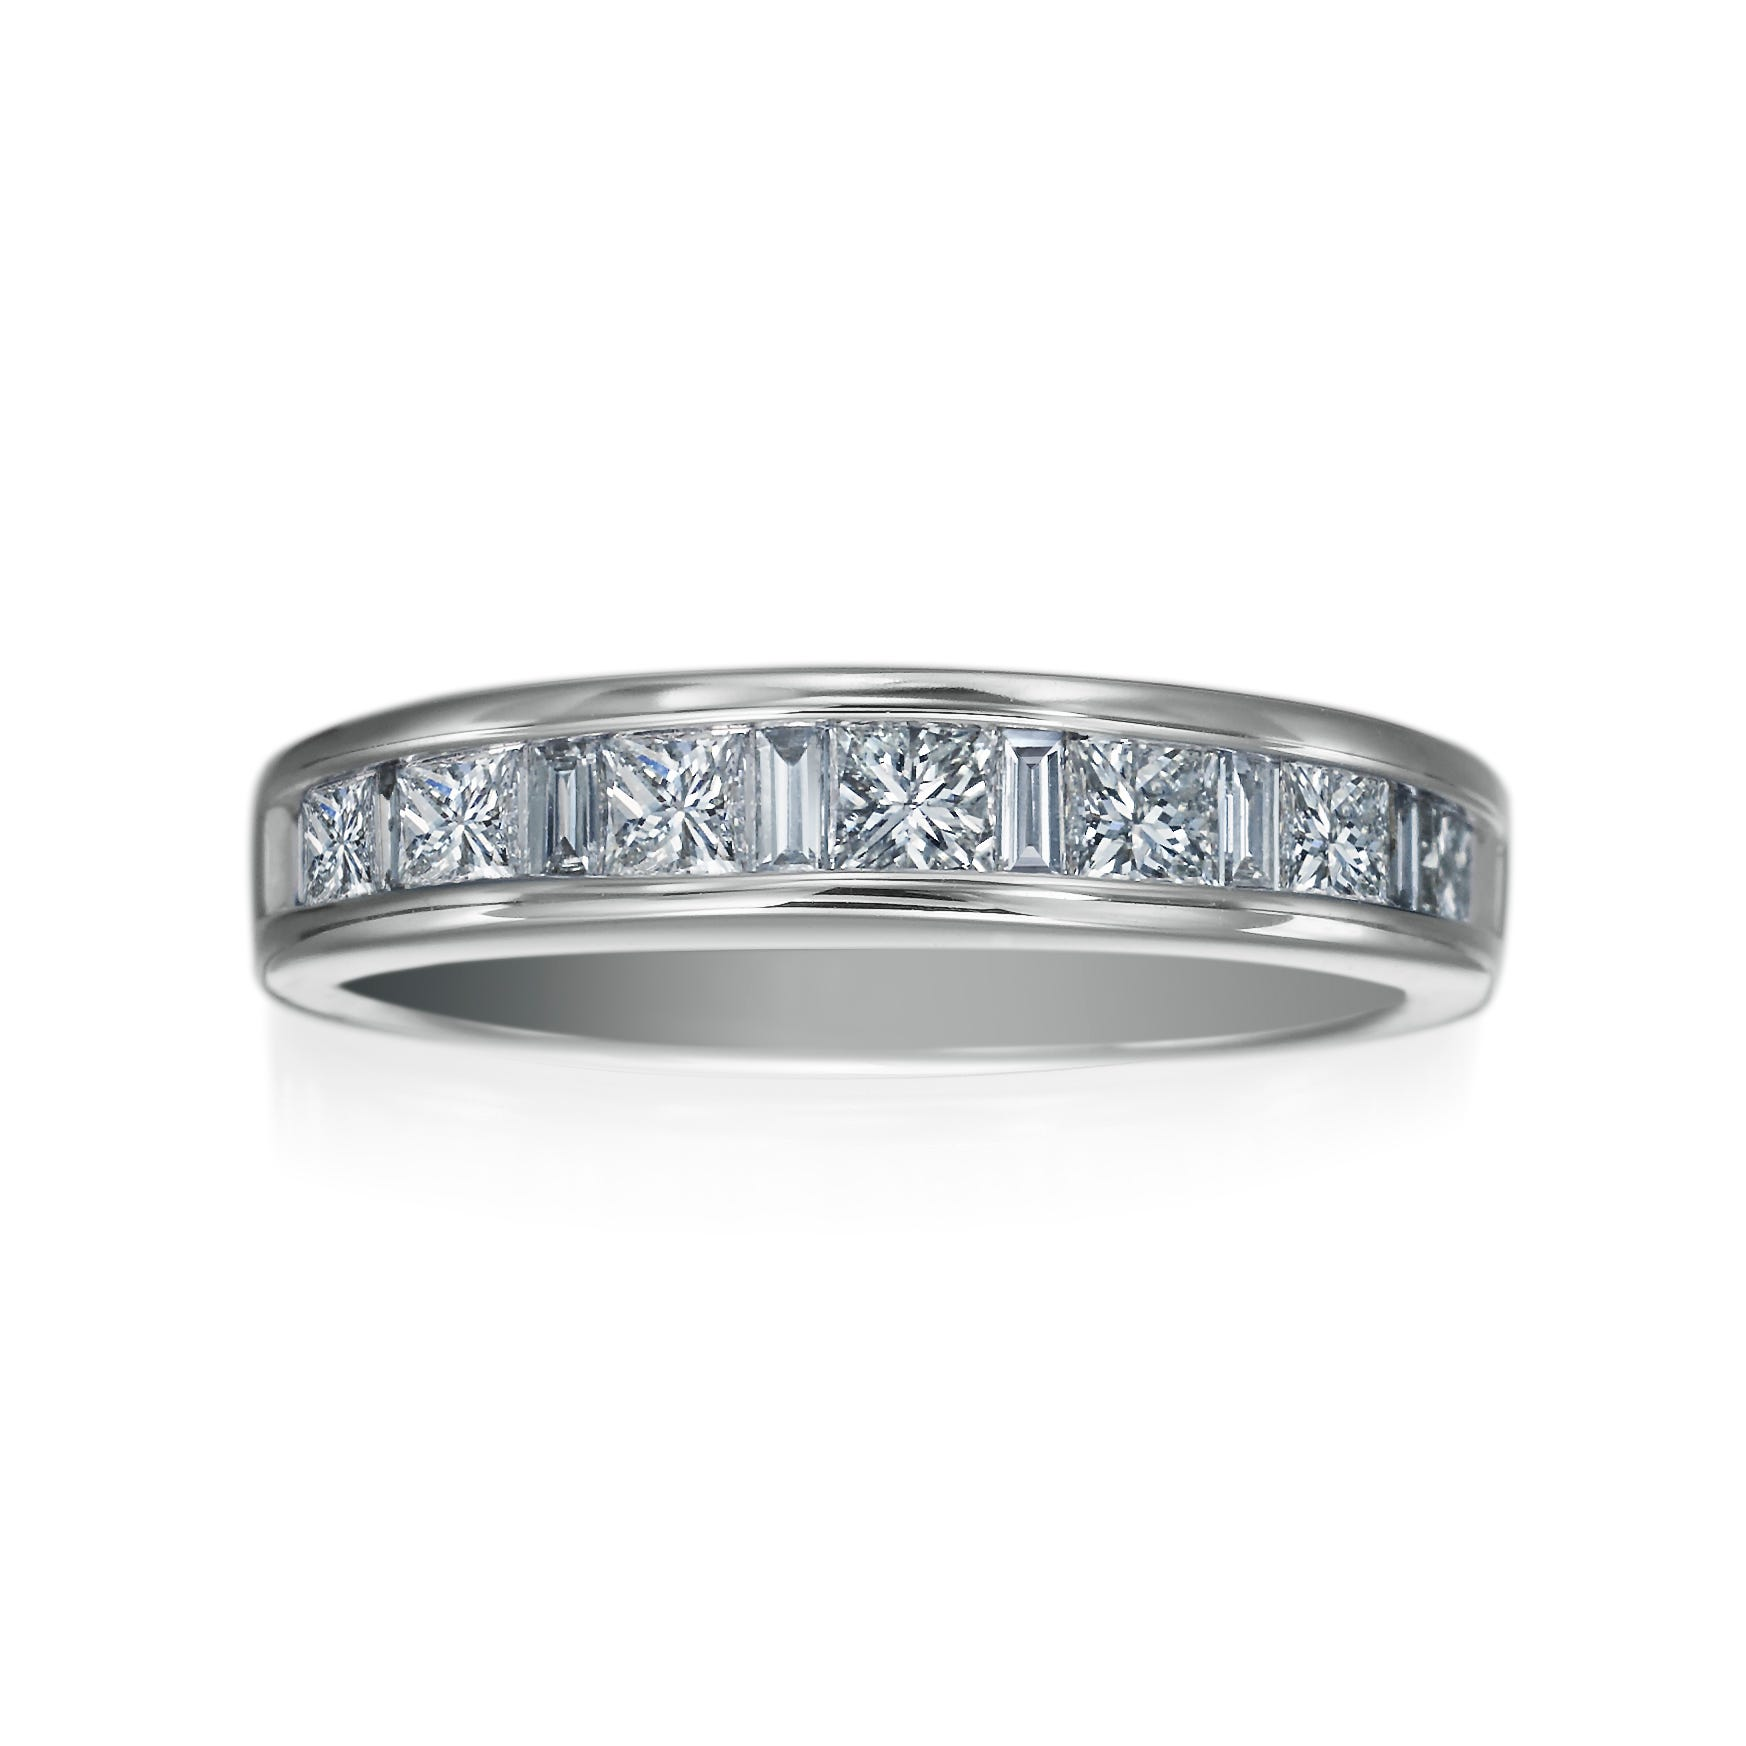 Kallati 1ctw. Diamond Anniversary Band in 14k White Gold